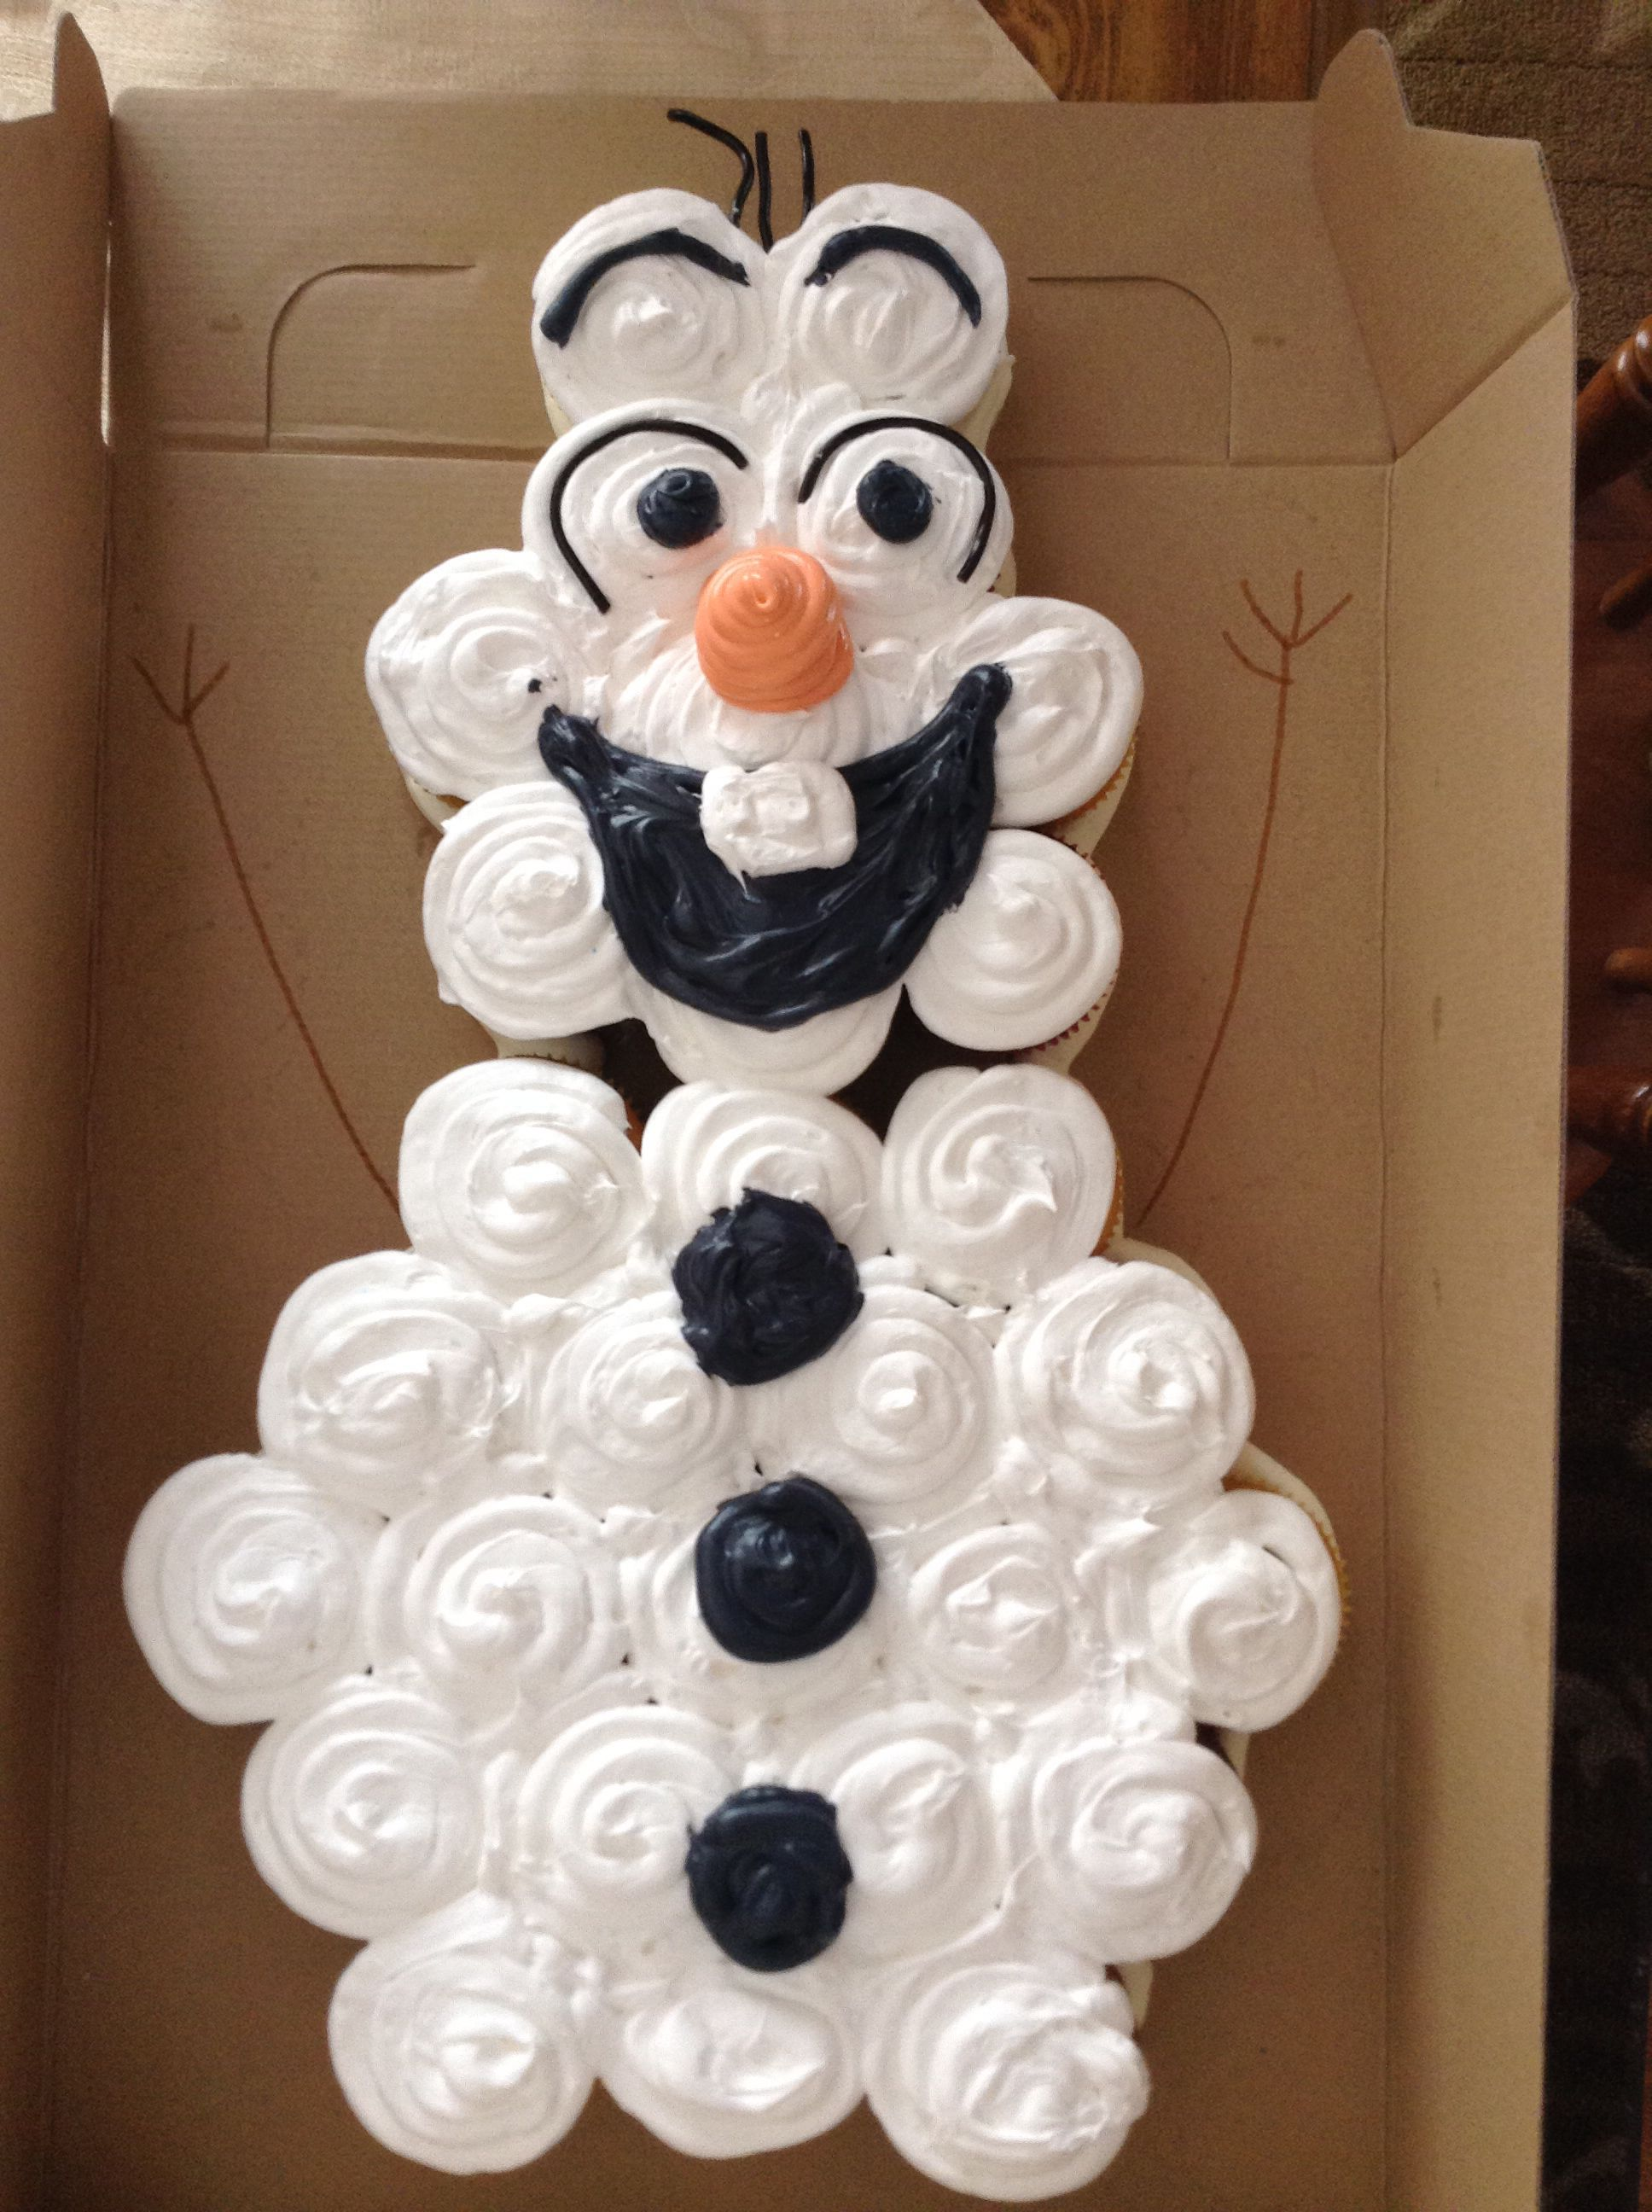 Olaf Theme Cupcakes About Contact Disclaimer Dmca Notice Privacy Policy